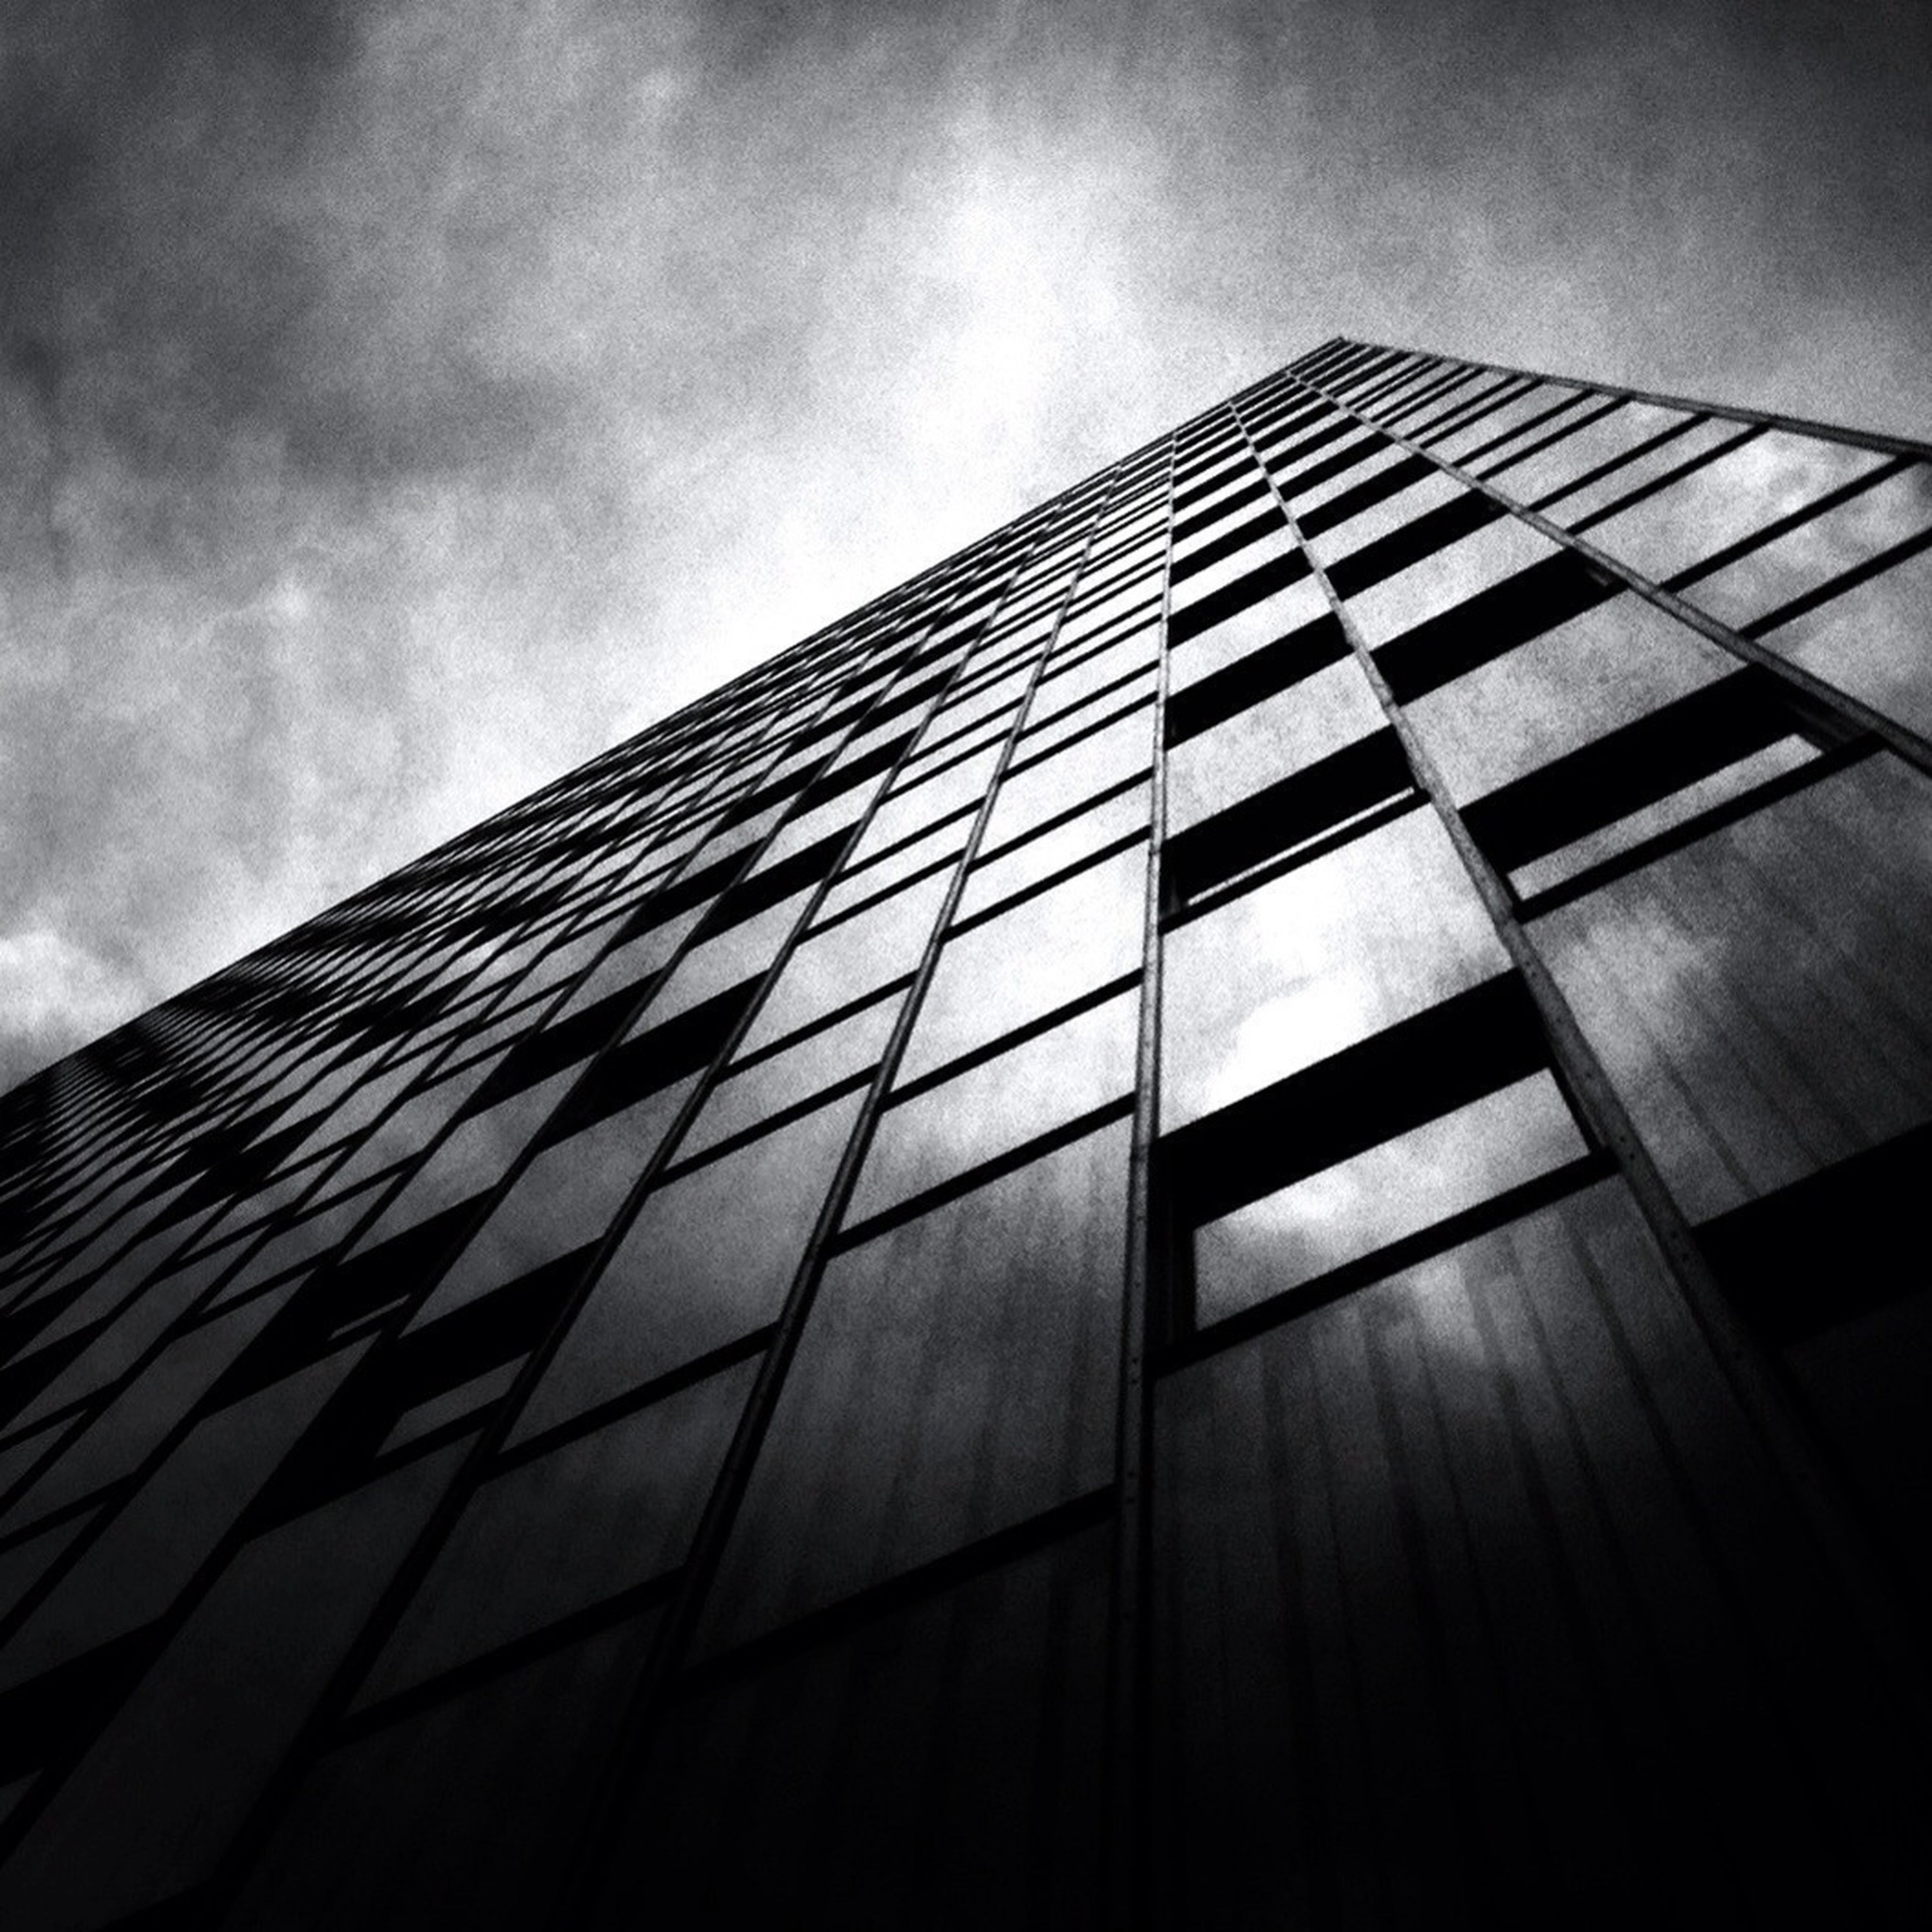 architecture, building exterior, built structure, low angle view, modern, office building, skyscraper, city, tall - high, sky, building, glass - material, tower, reflection, window, day, tall, cloud - sky, no people, outdoors